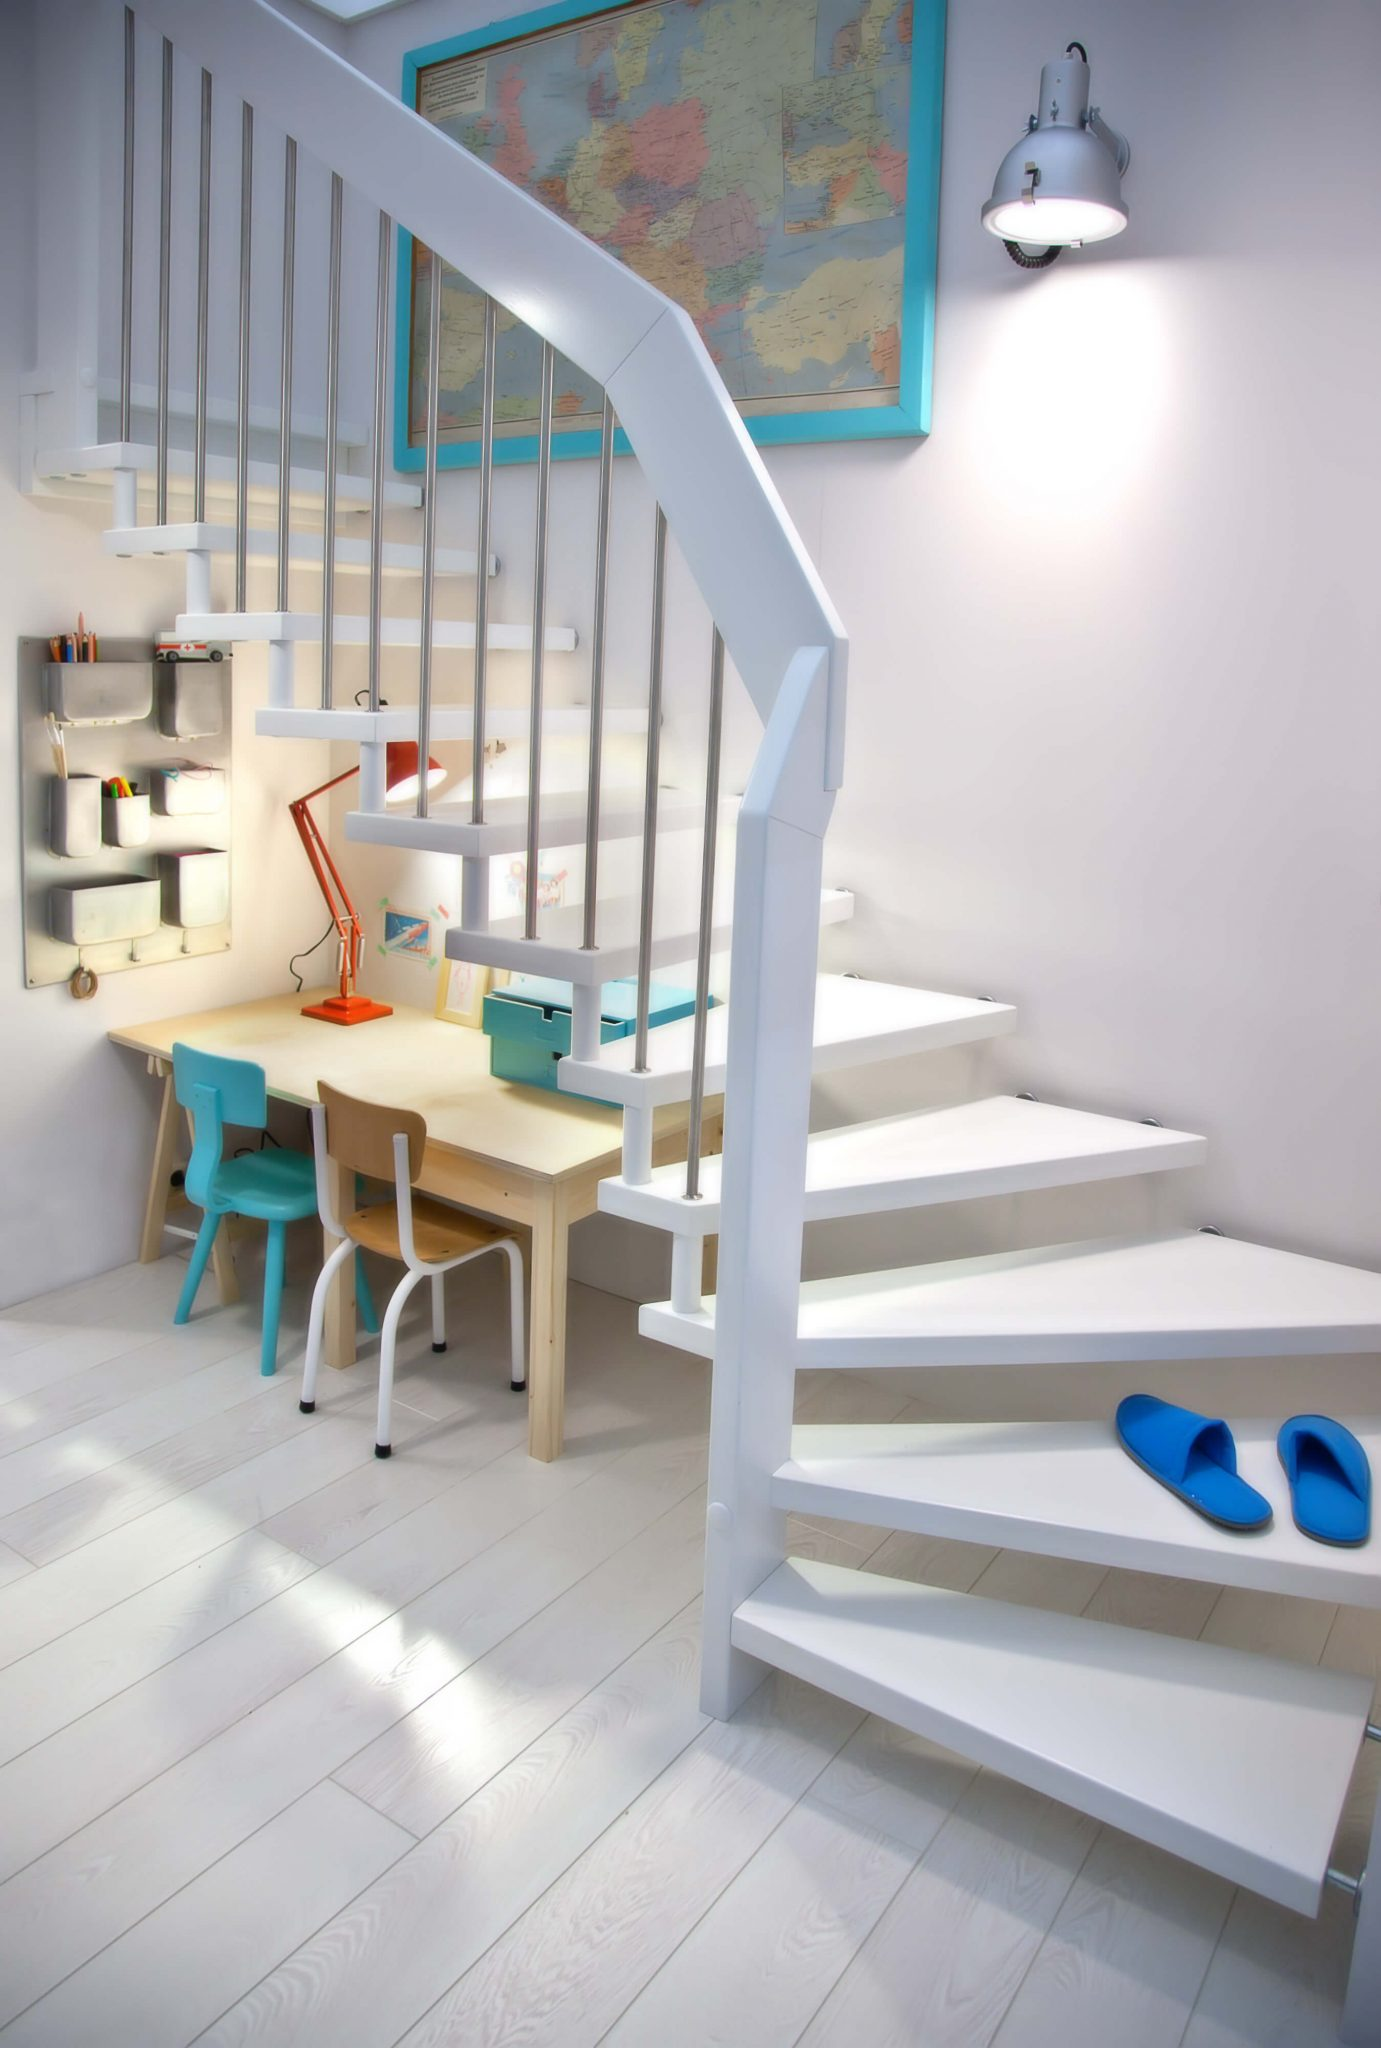 Interesting white staircase with no outside stringer floats above children's play and desk area.